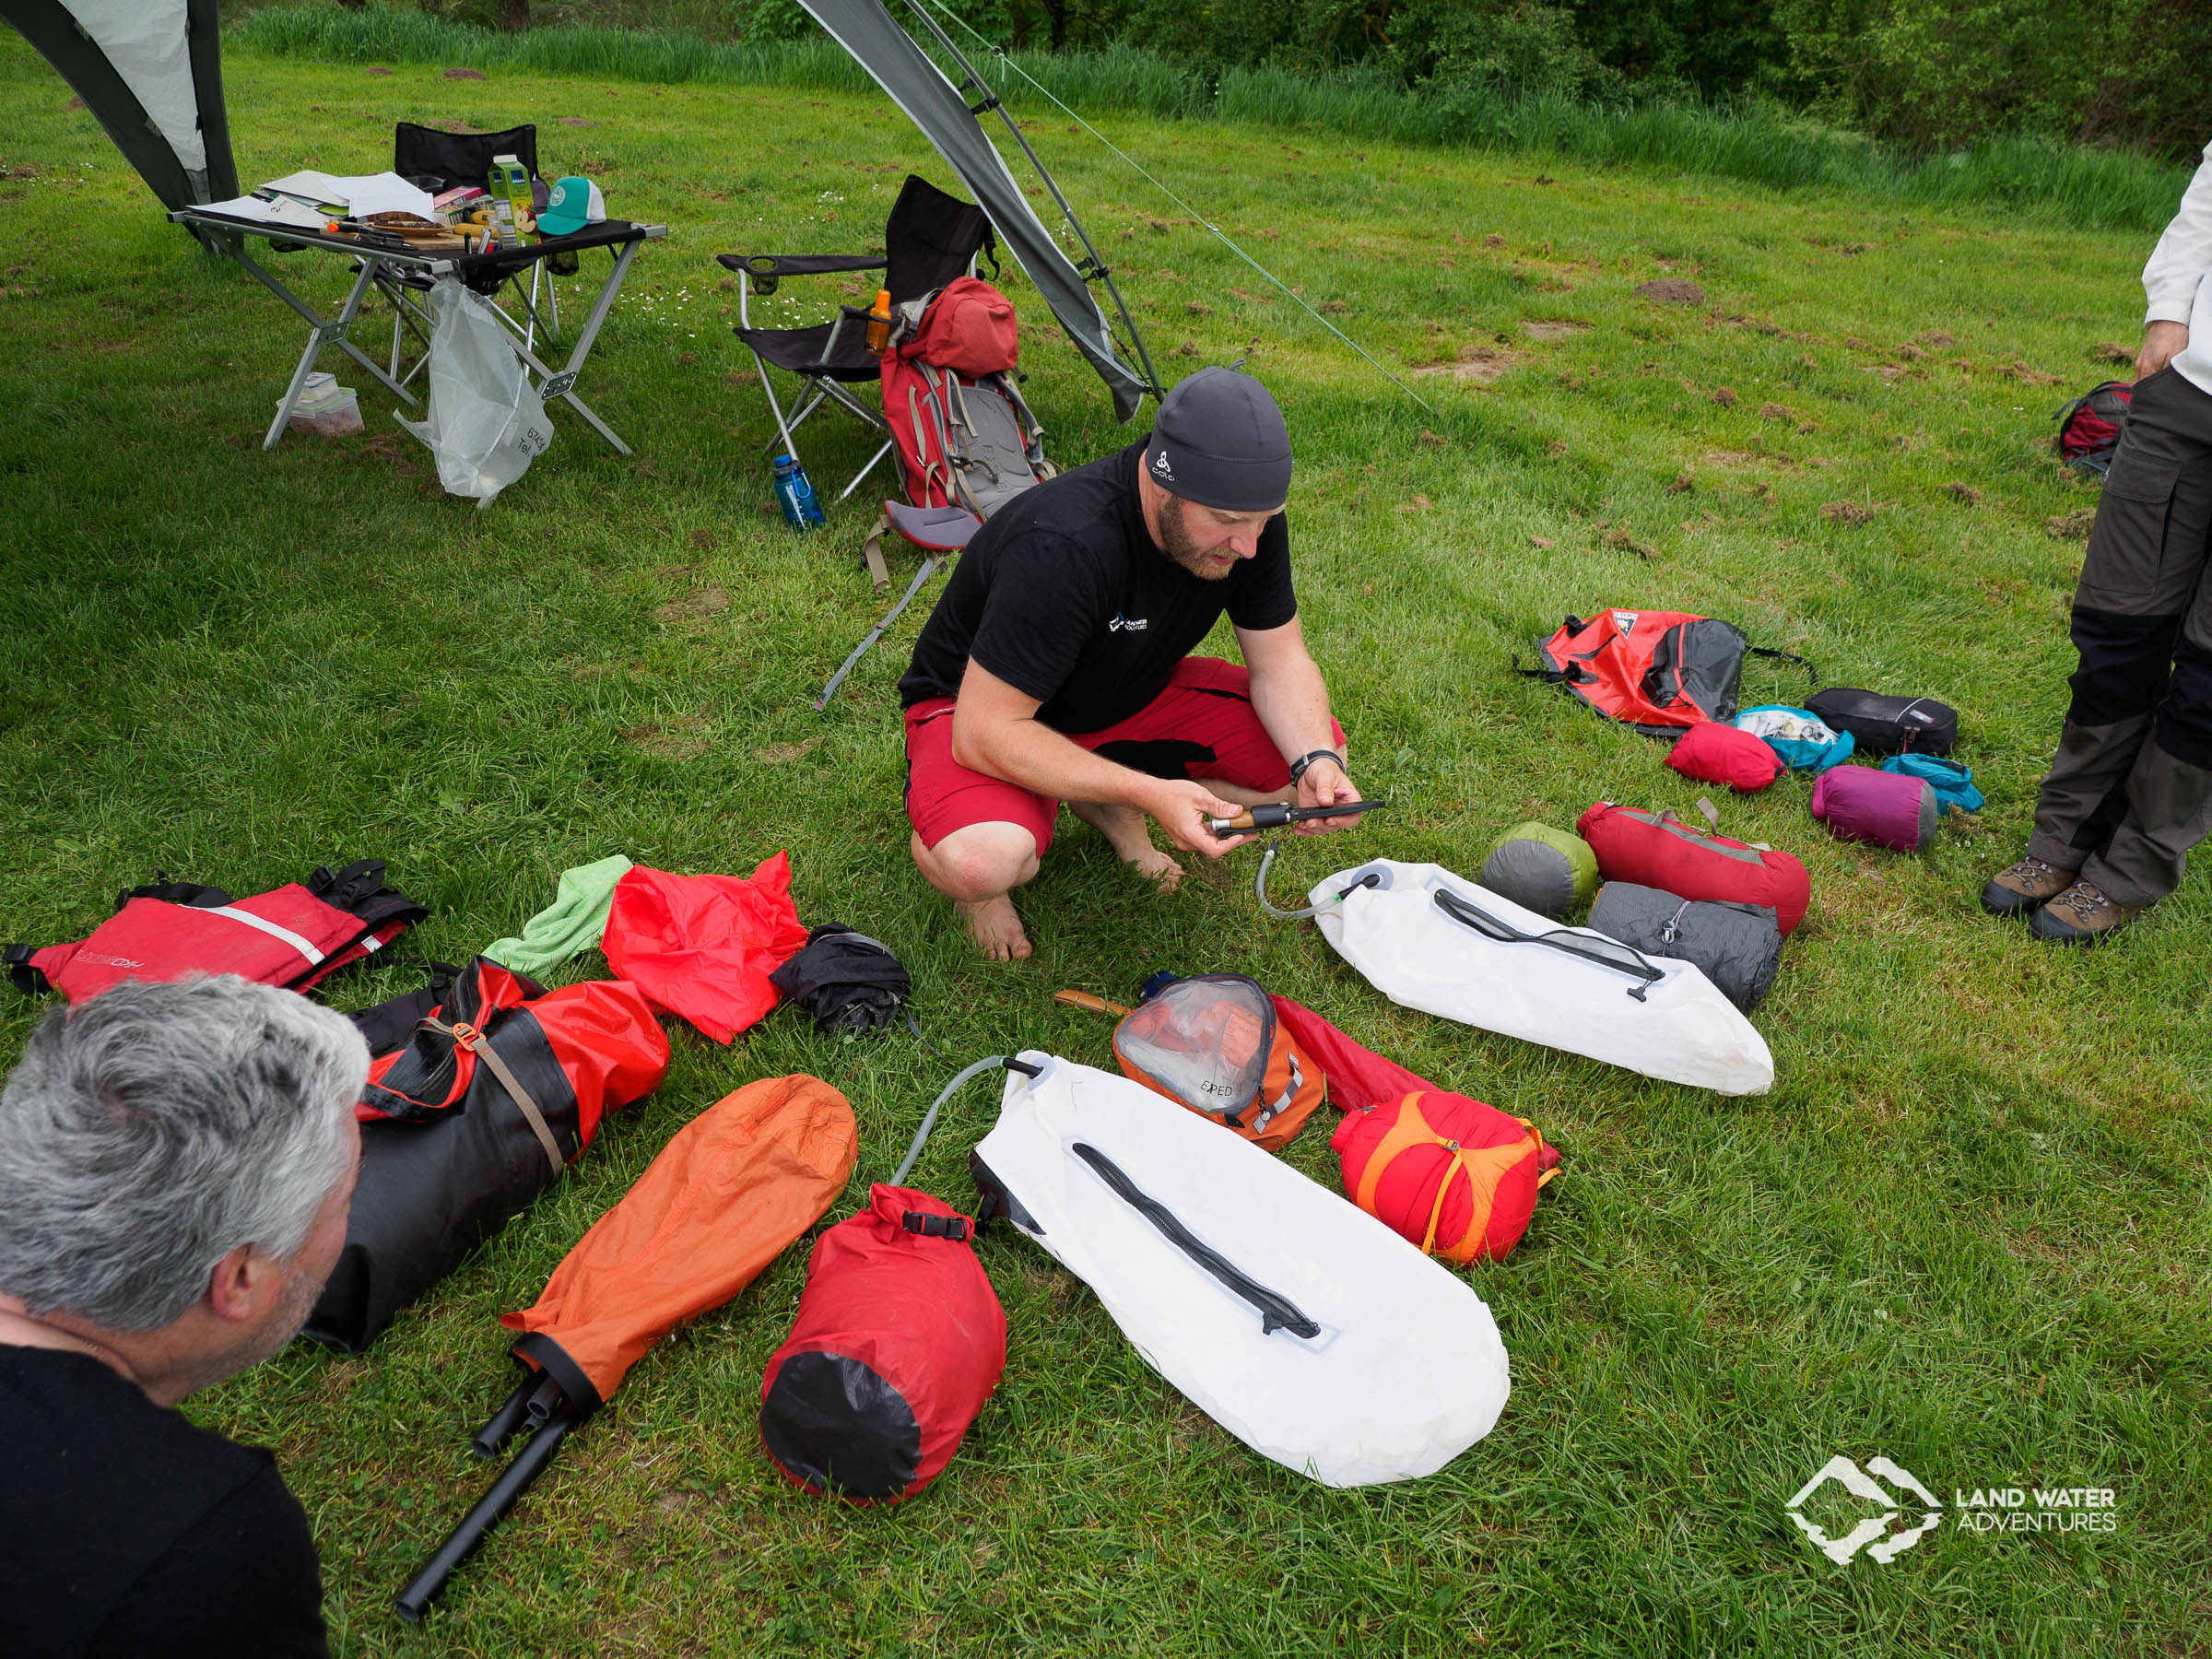 Multiday Packrafting Kompaktkurs Ausrüstungscheck © Land Water Adventures